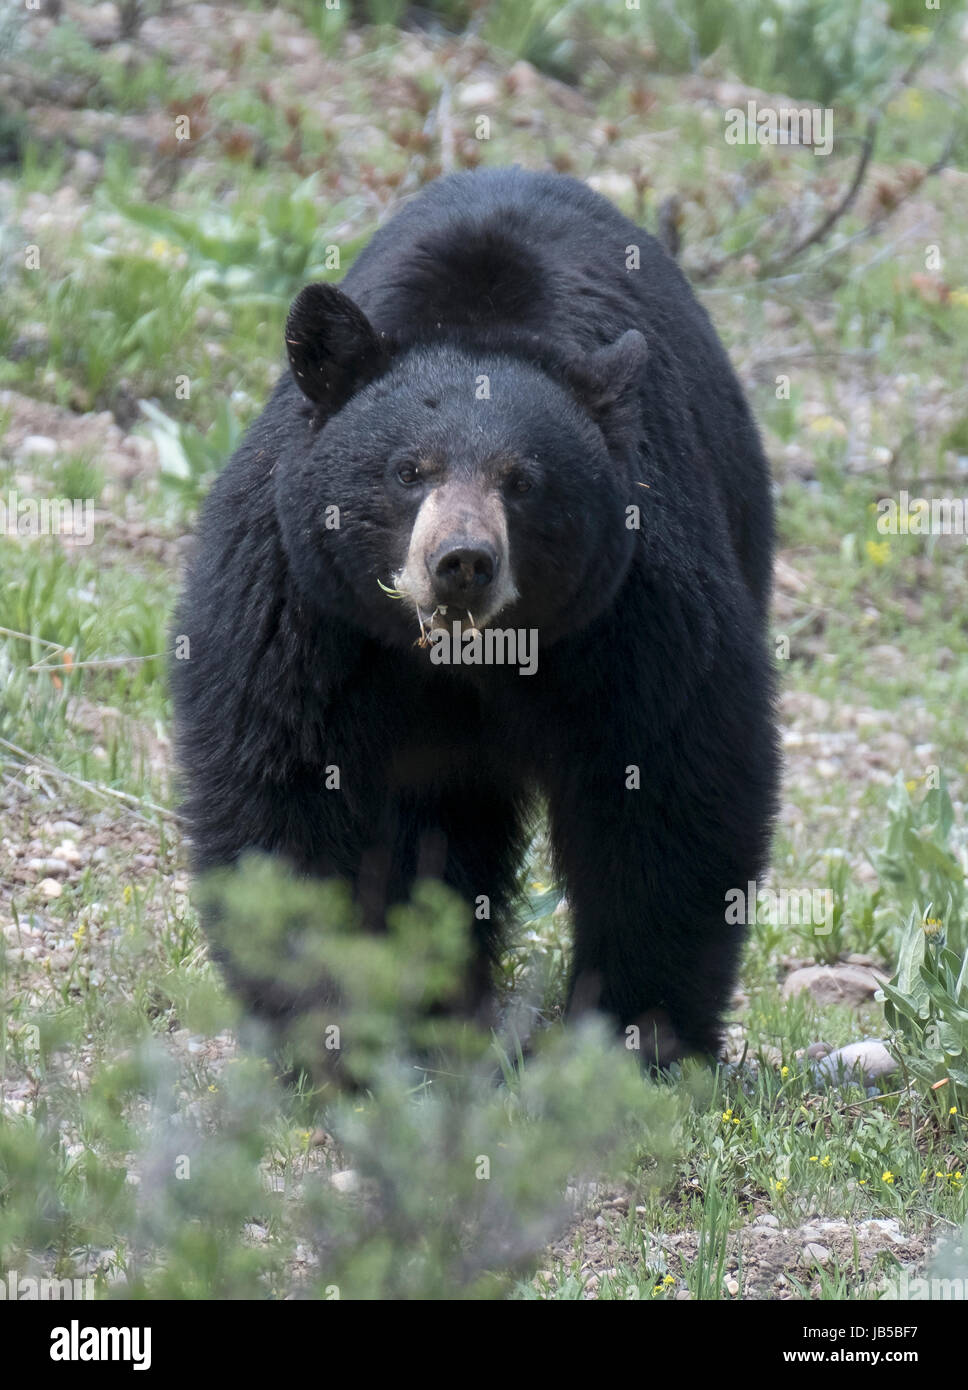 American black bear (Ursus americanus), Grand Teton National Park, Wyoming, USA, North America. - Stock Image